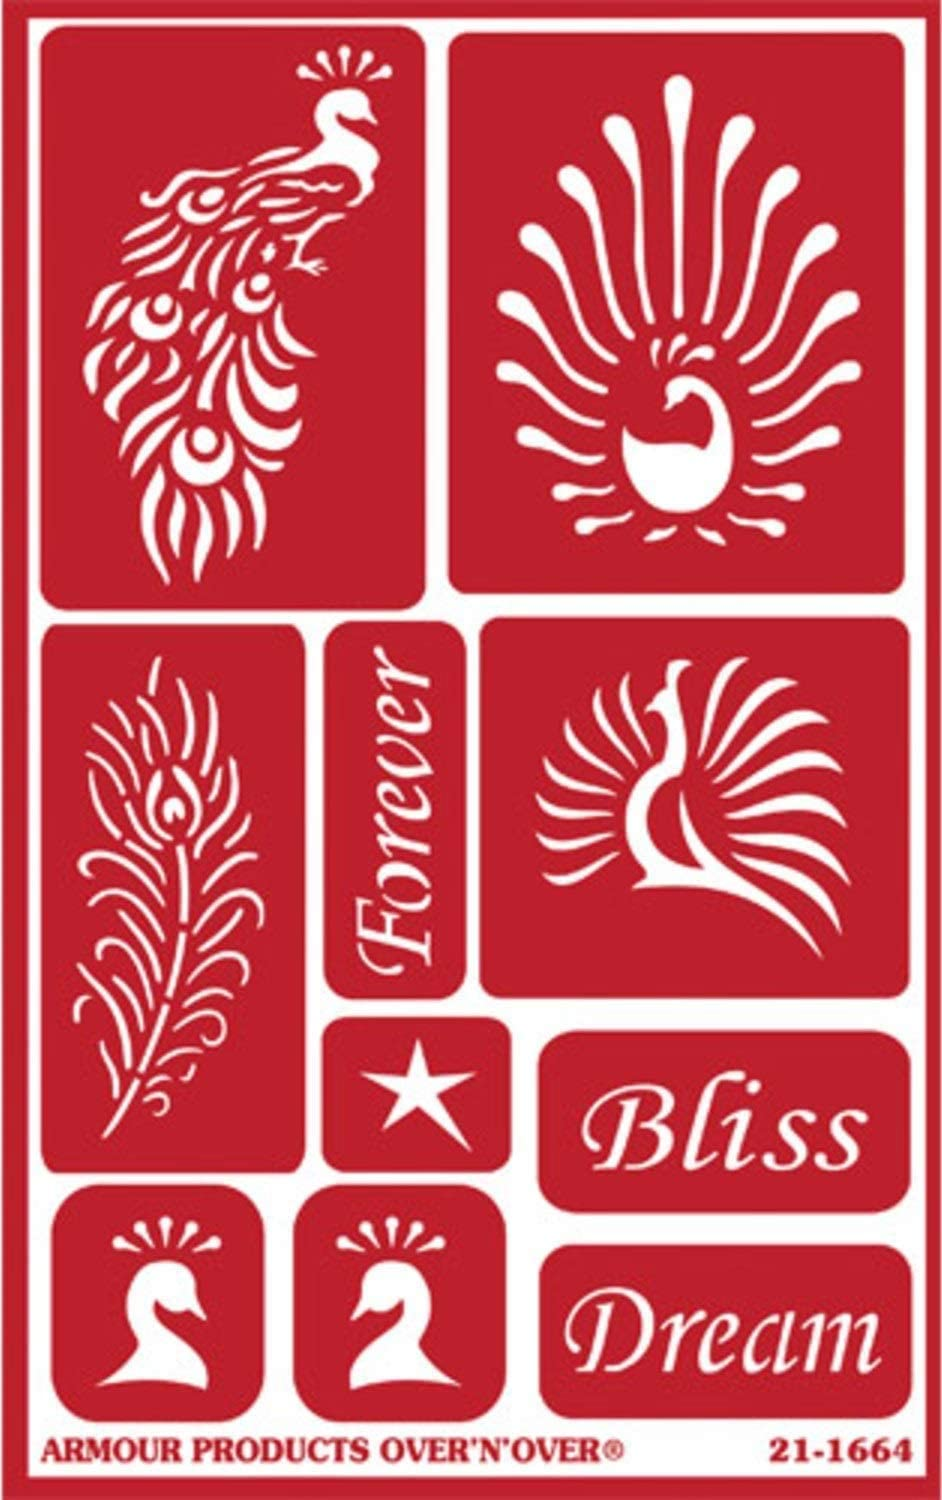 Peacock Designs 2 Etching Stencils for Glass Bliss Set Includes Brush Reusable Etch Stencils for Glass with Yoga Theme with Namaste Lotus Flower Feather Total 3 Items Om